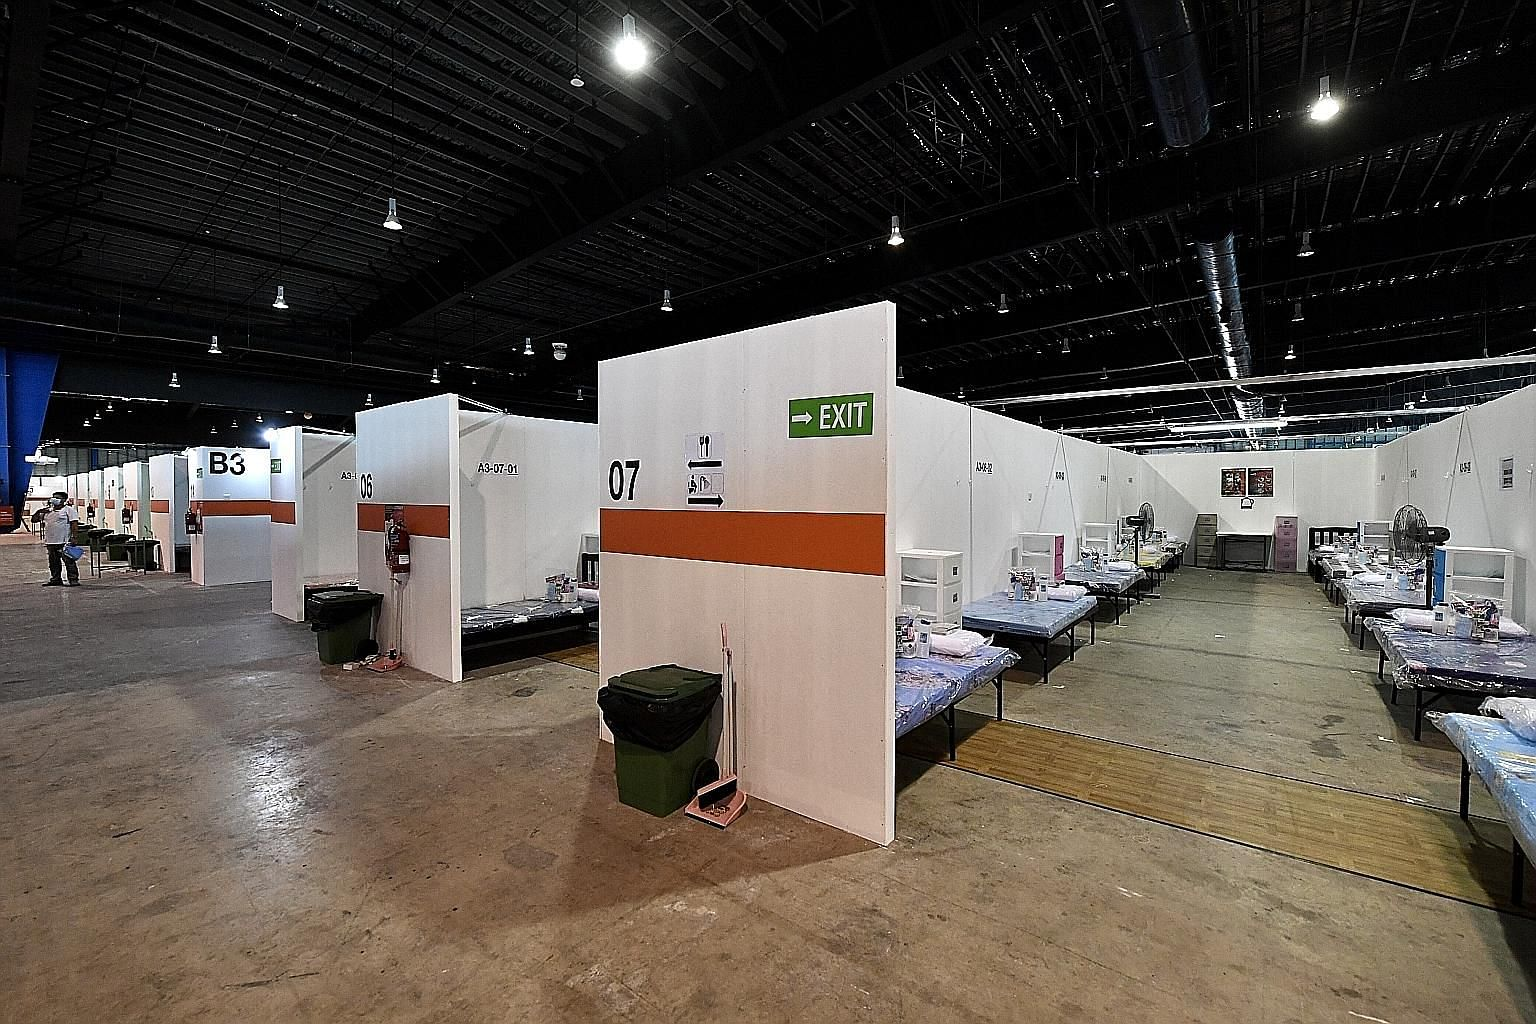 Fit-out works for community isolation facilities such as Changi Exhibition Centre (left) are contracted through the emergency procurement procedure. ST FILE PHOTO